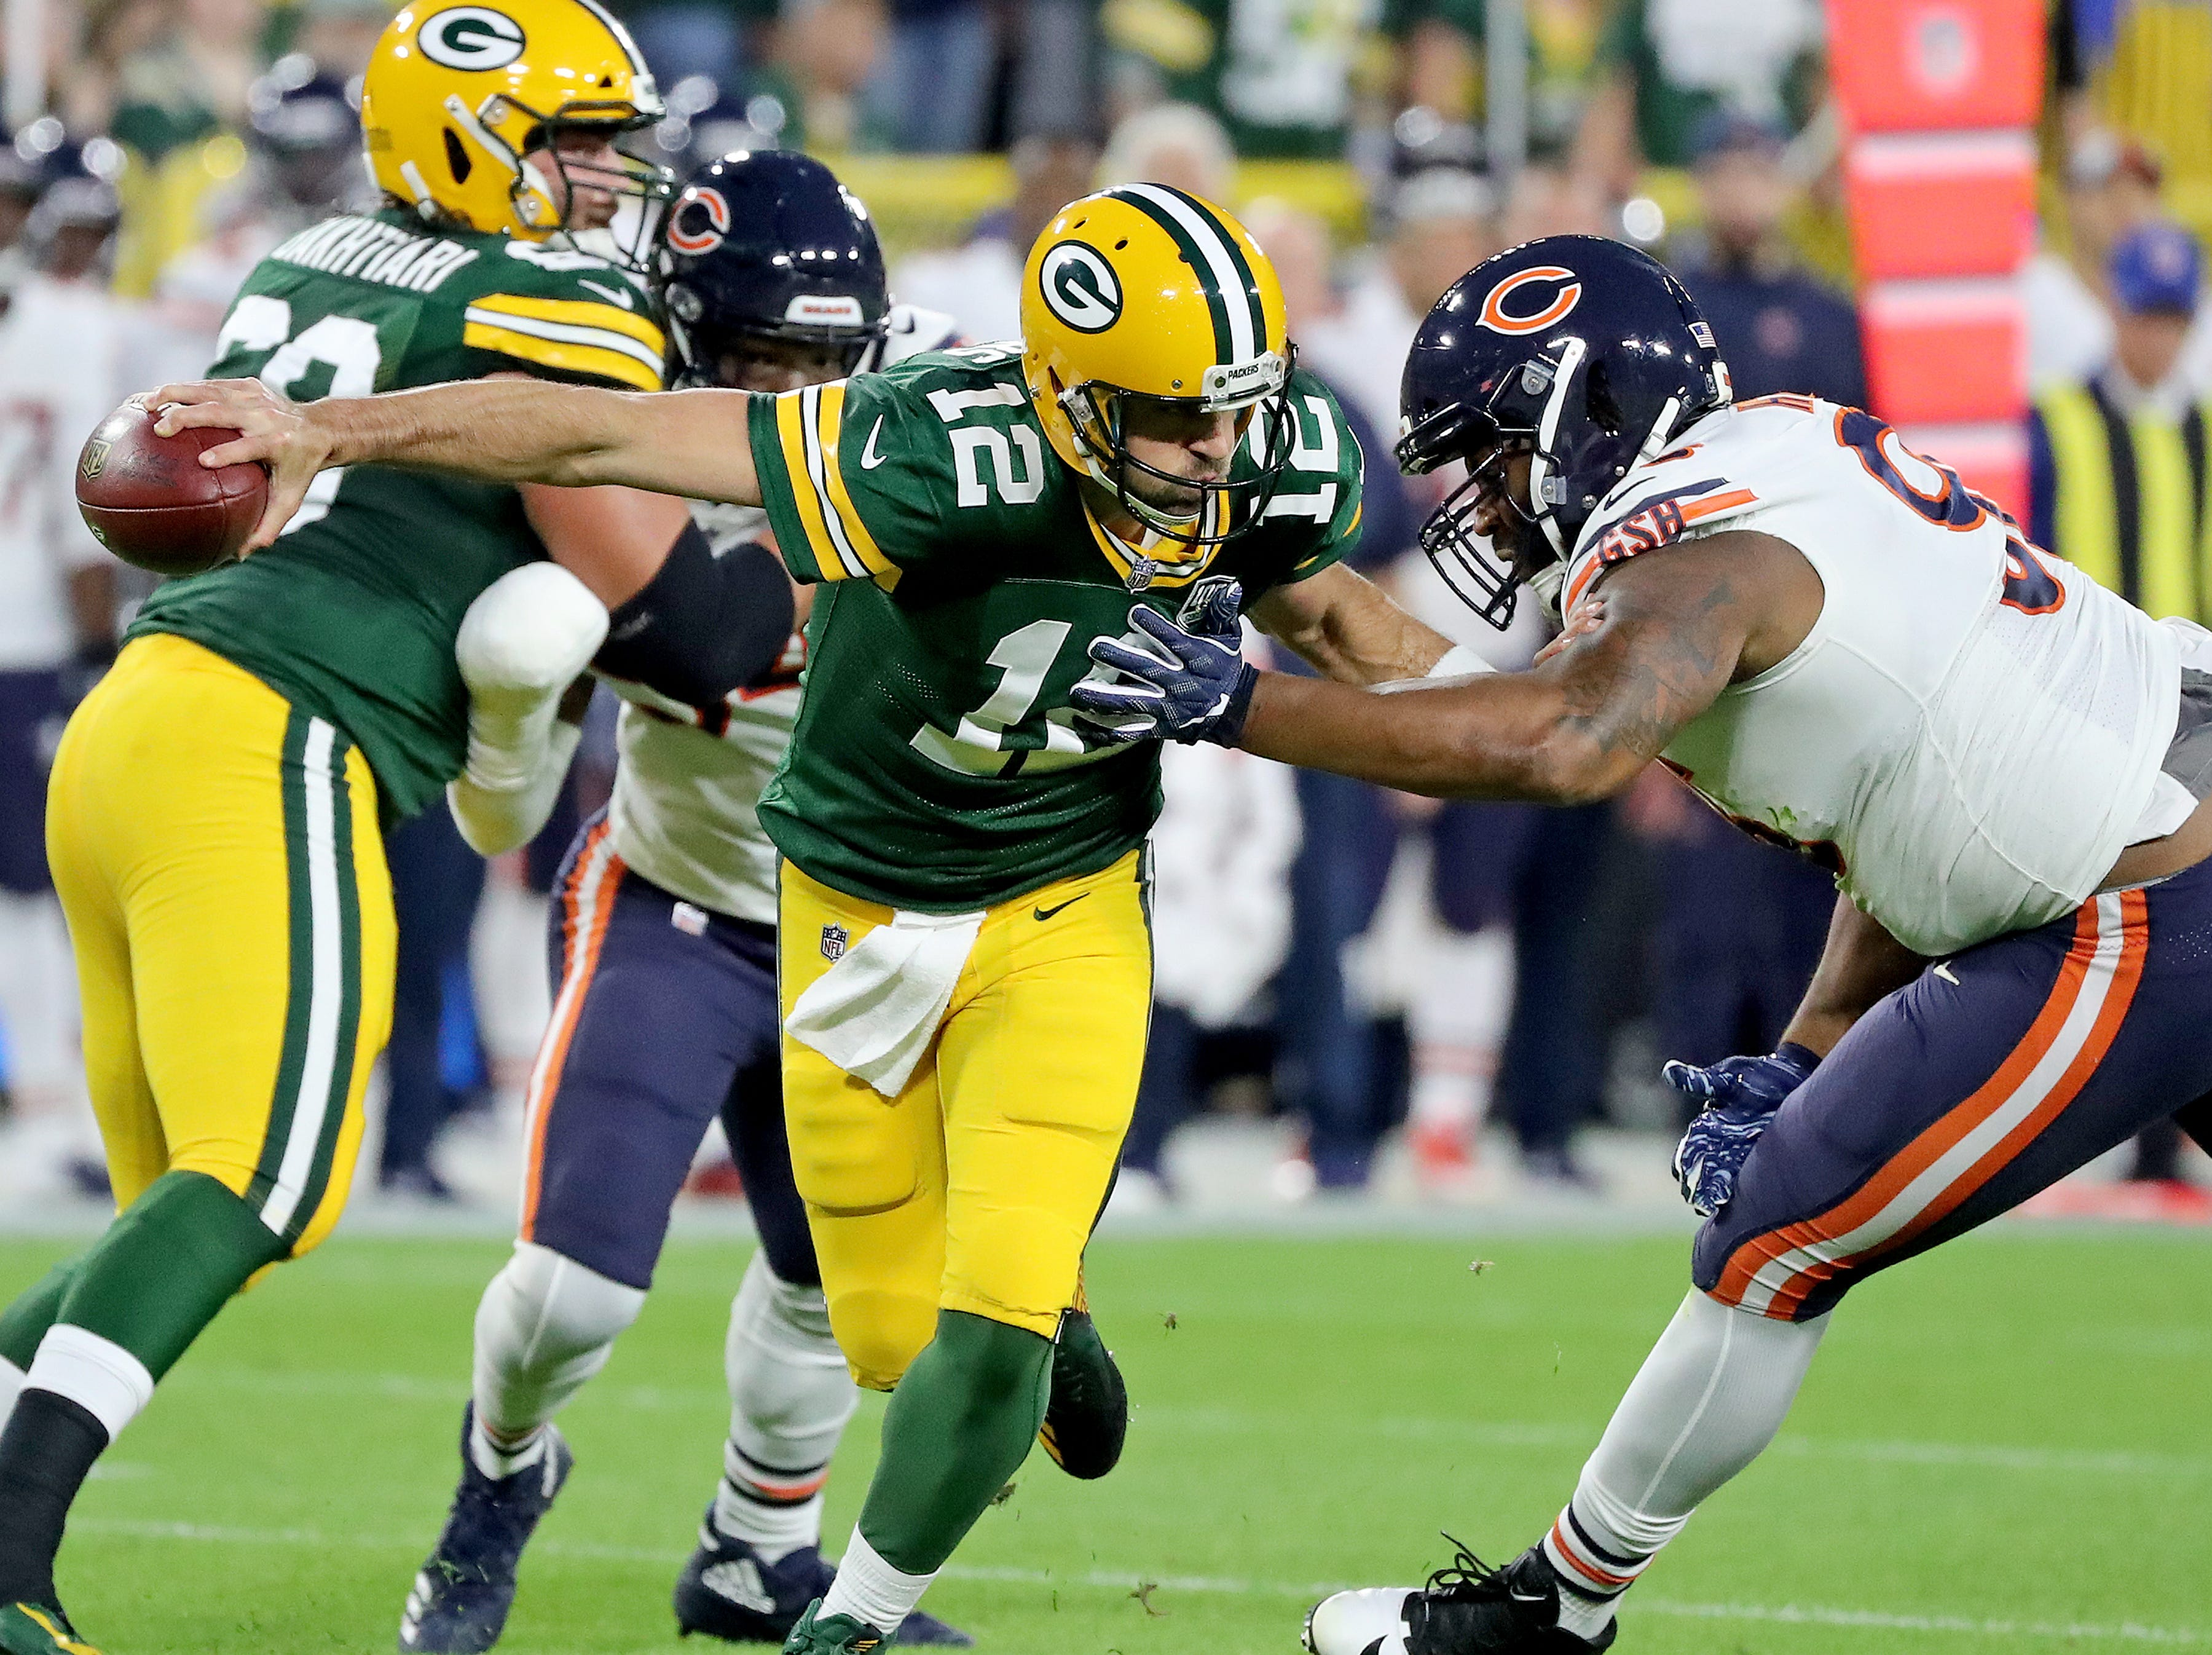 Green Bay Packers quarterback Aaron Rodgers (12) barely escapes the rush of defensive end Akiem Hicks (96) against the Chicago Bears Sunday, September 9, 2018 at Lambeau Field in Green Bay, Wis.